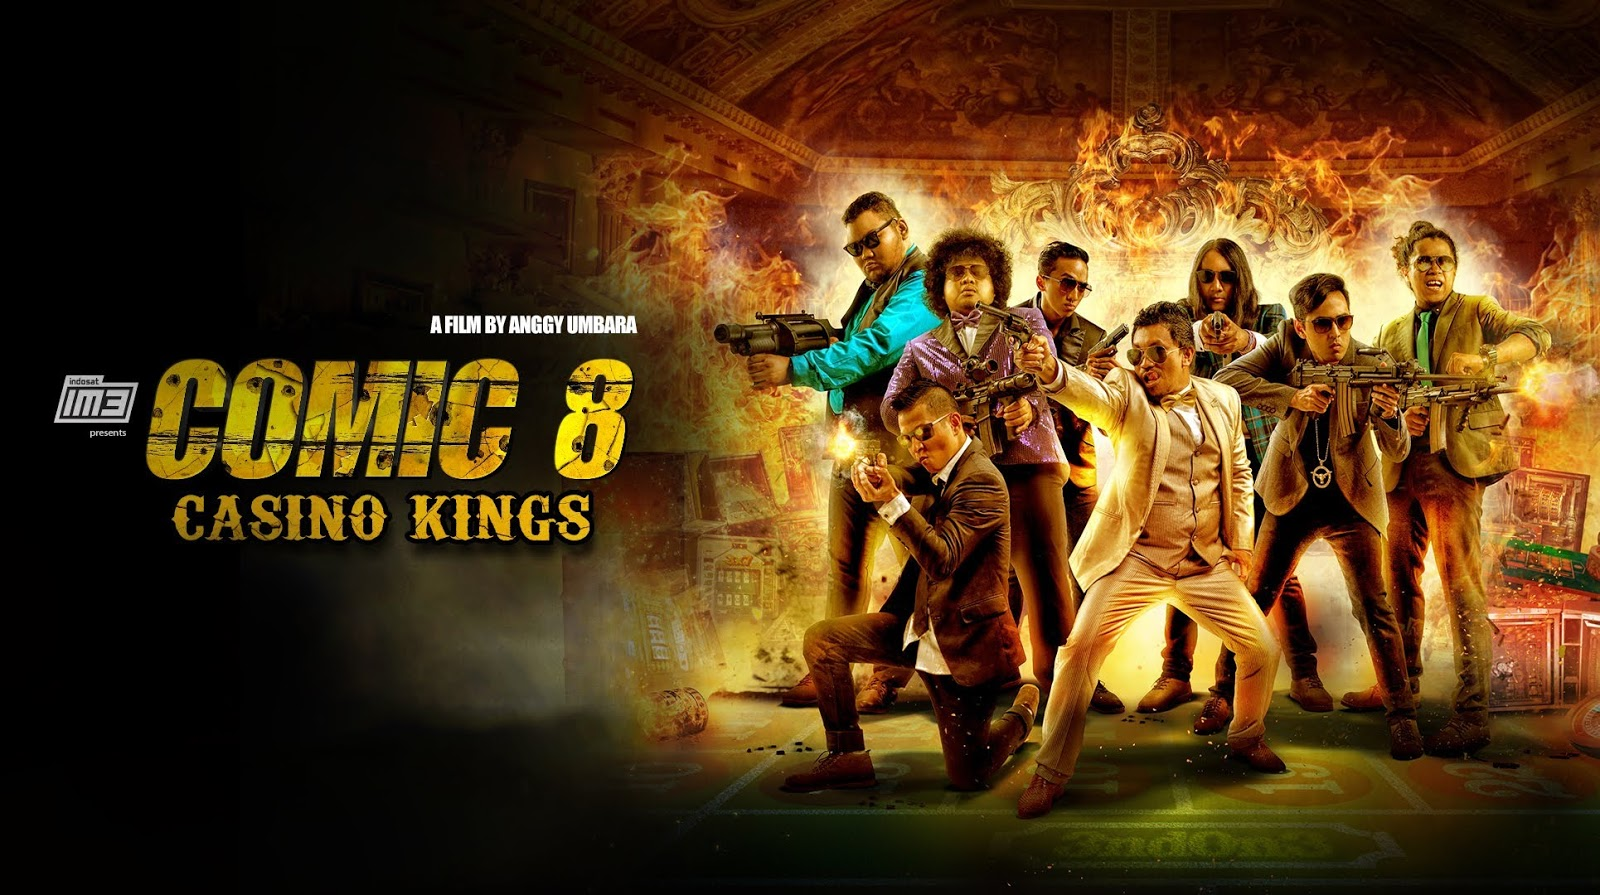 comic 8 full casino kings